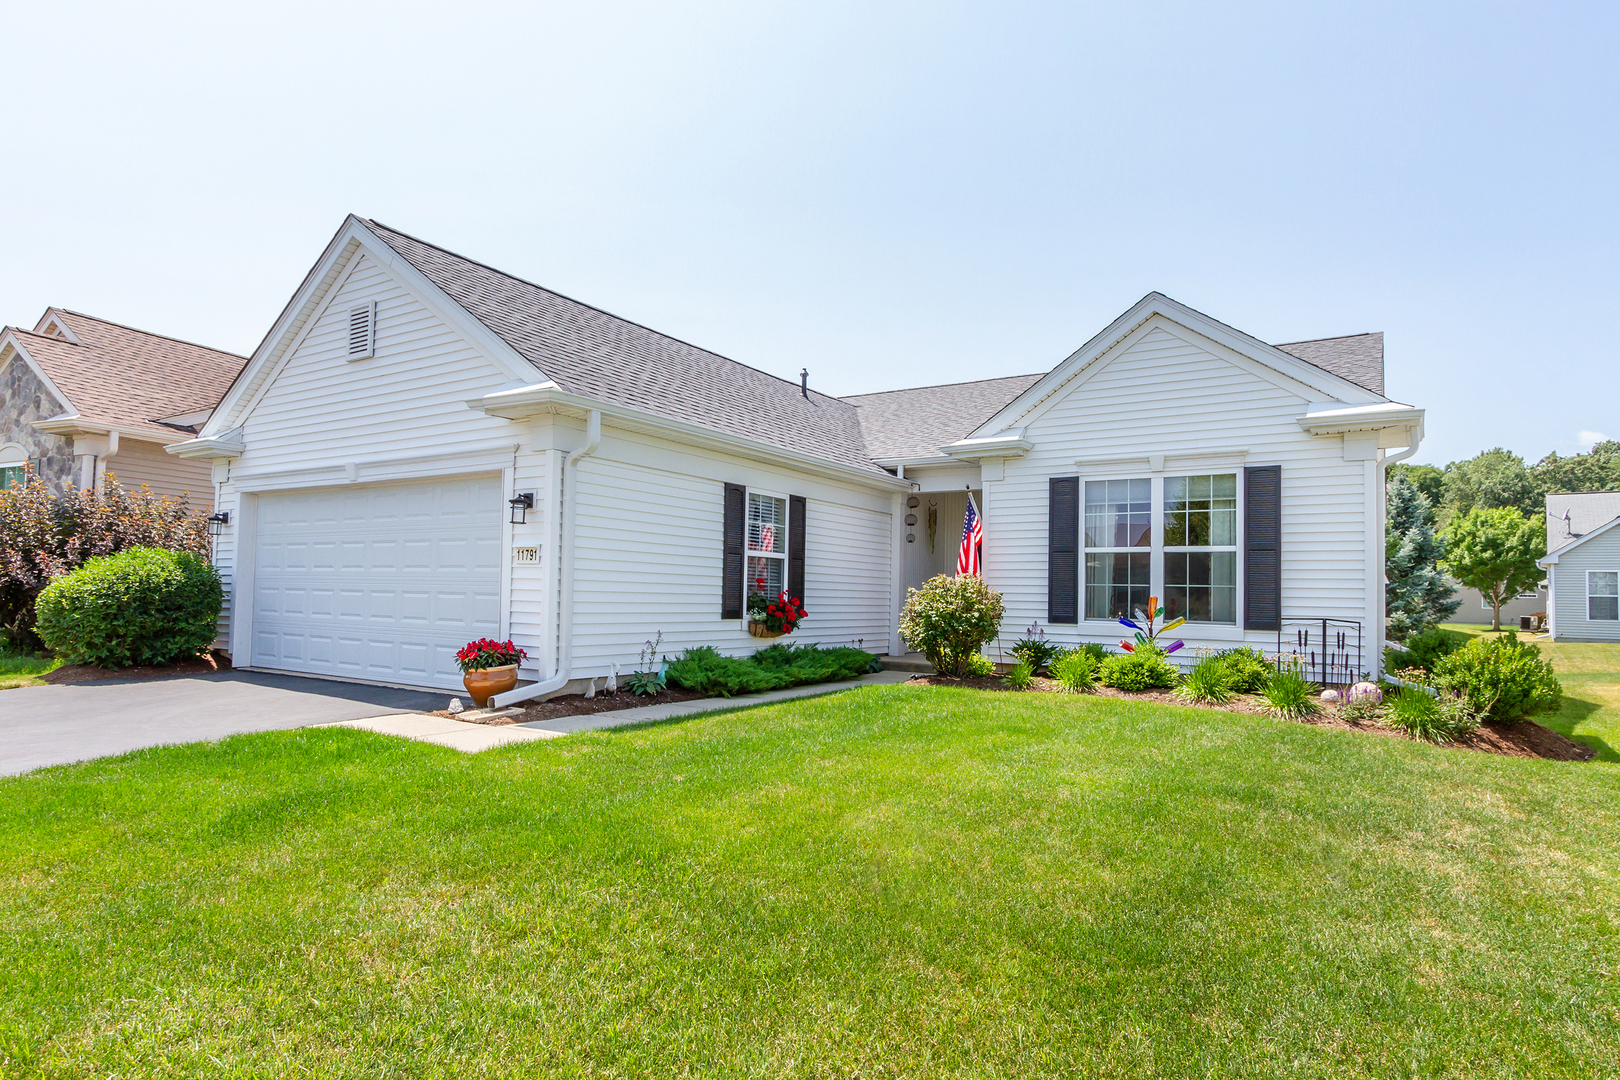 Photo for 11791 Covey Lane, HUNTLEY, IL 60142 (MLS # 10466185)